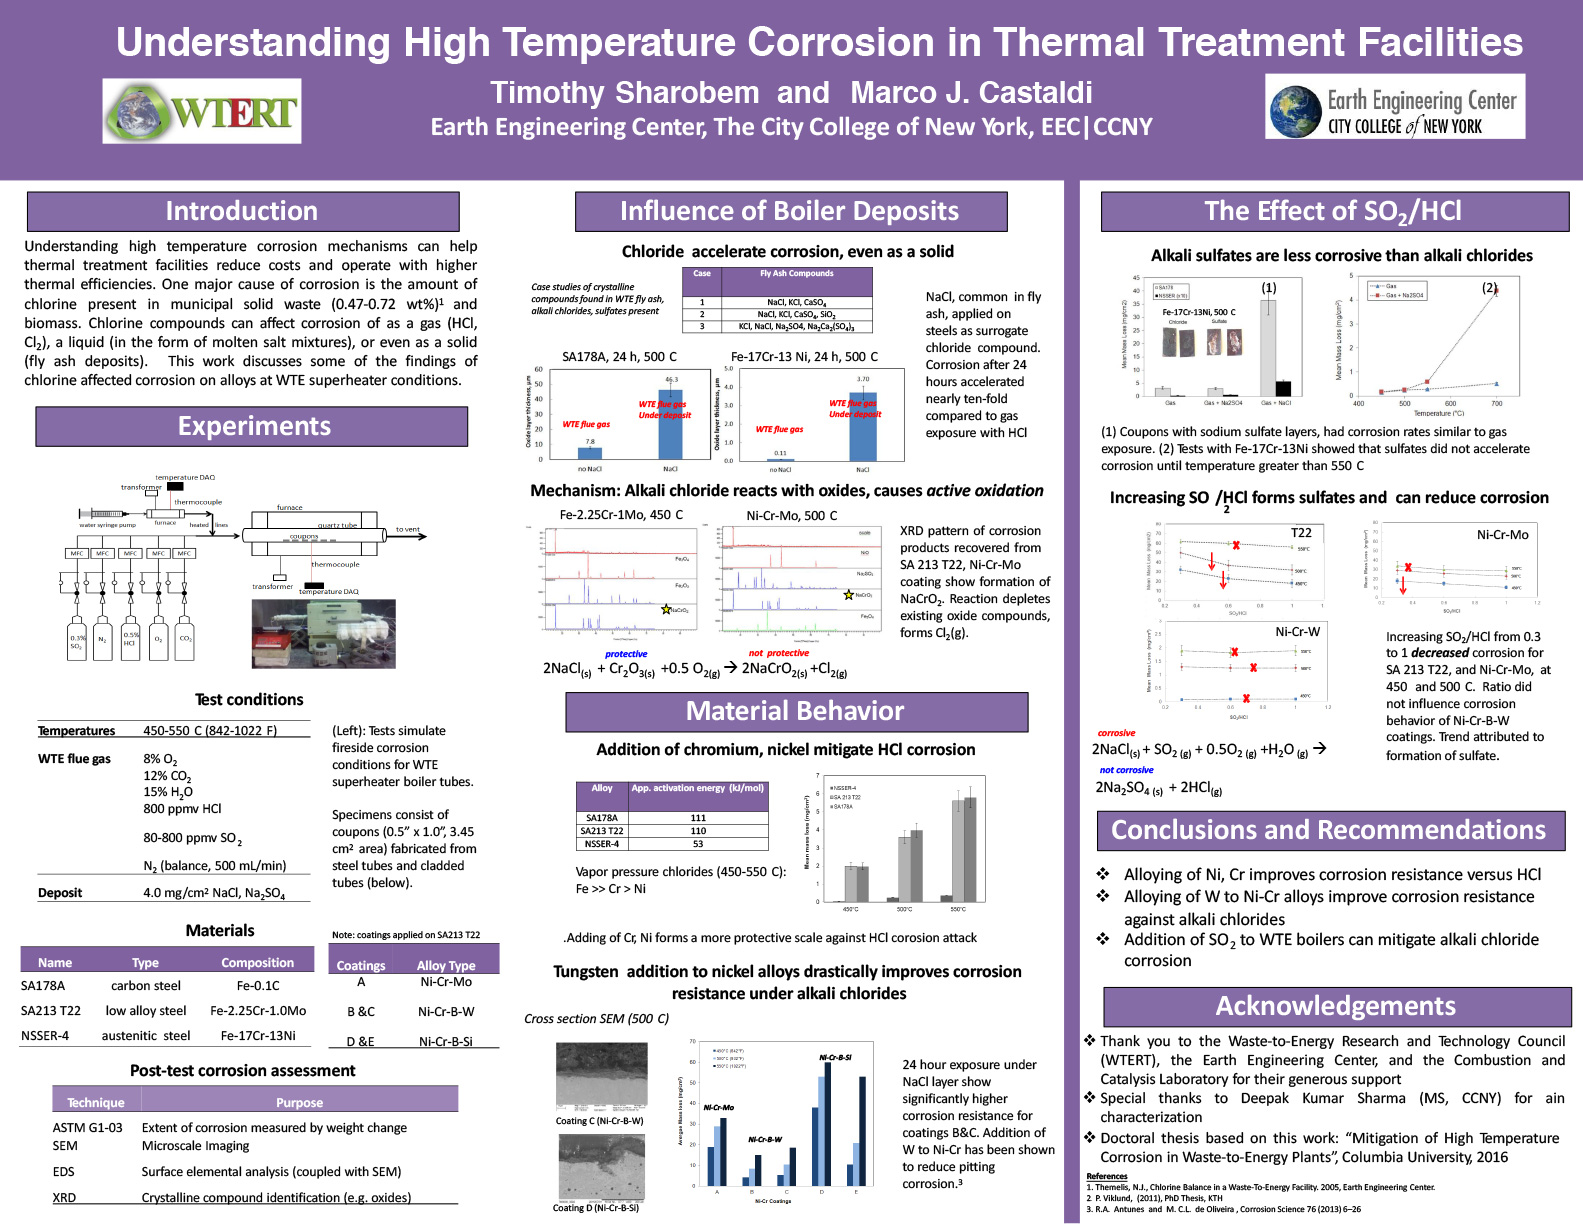 Understanding High Temperature Corrosion in Thermal Treatment Facilities